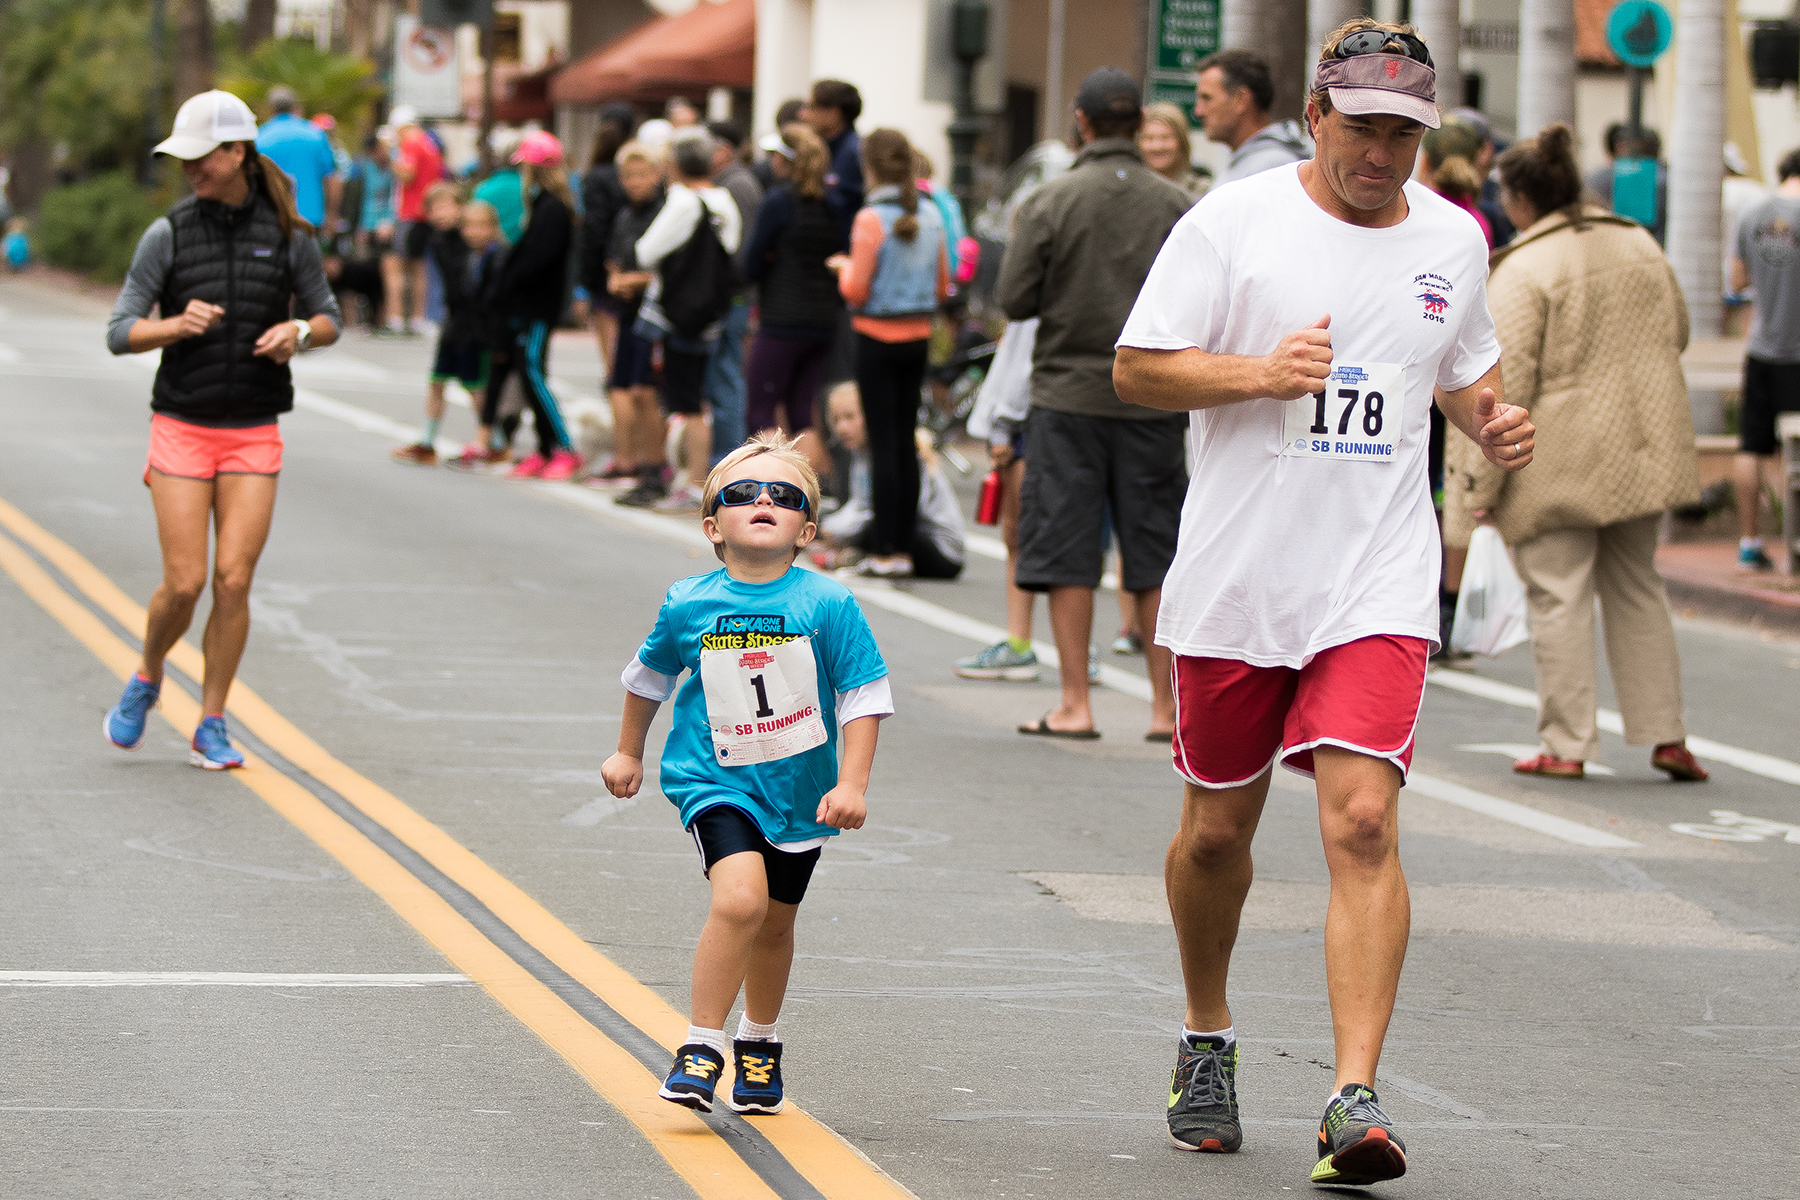 A father and his son participate in the Family Mile on State Street.